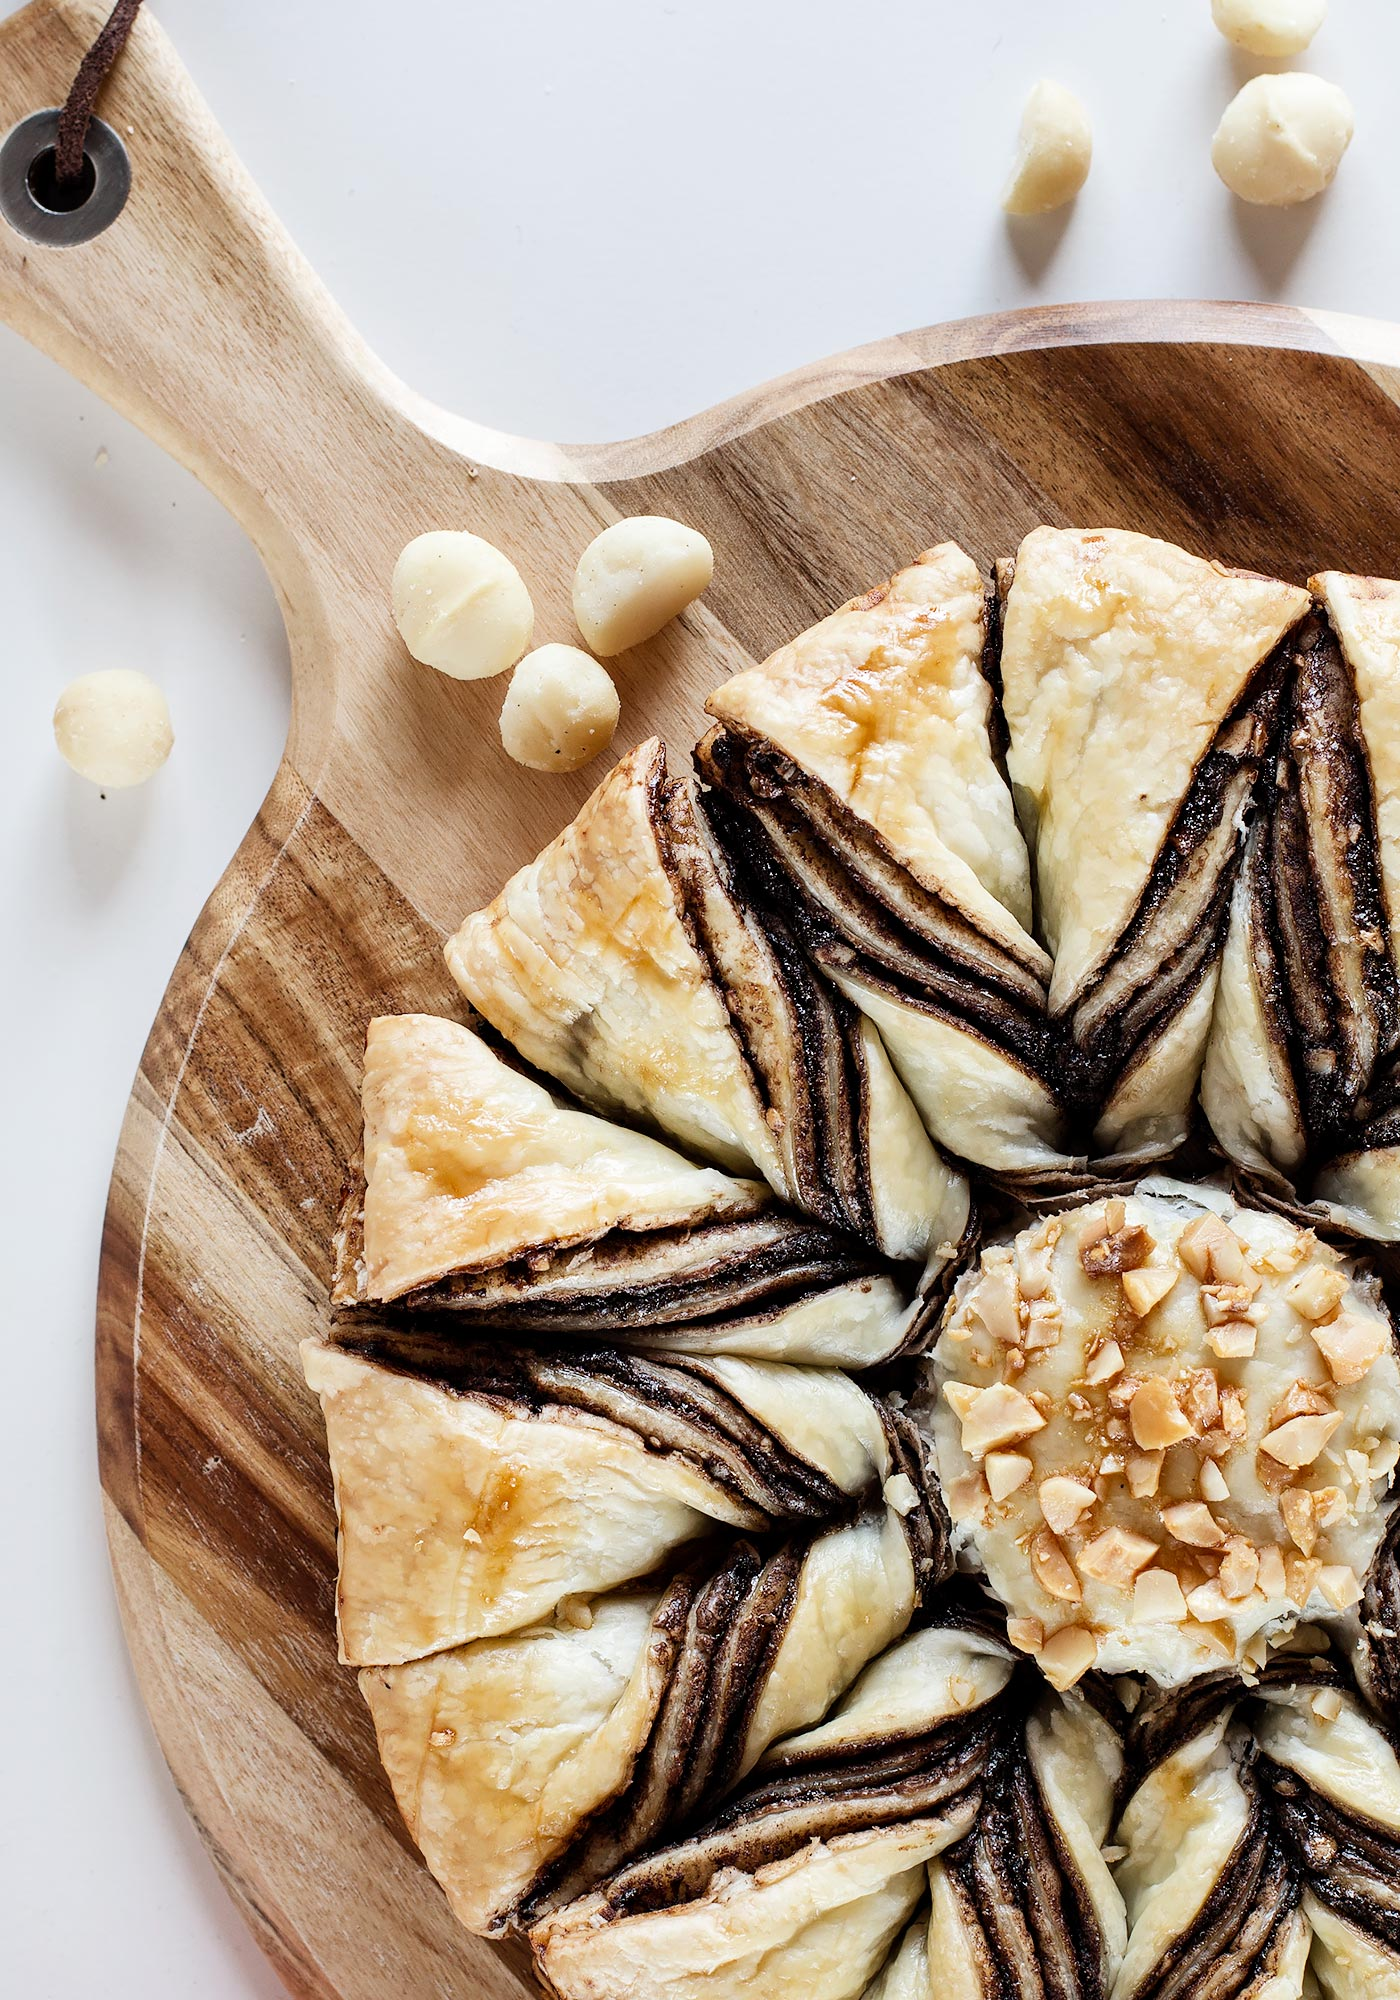 macadamia-chocolate-star-pastry5